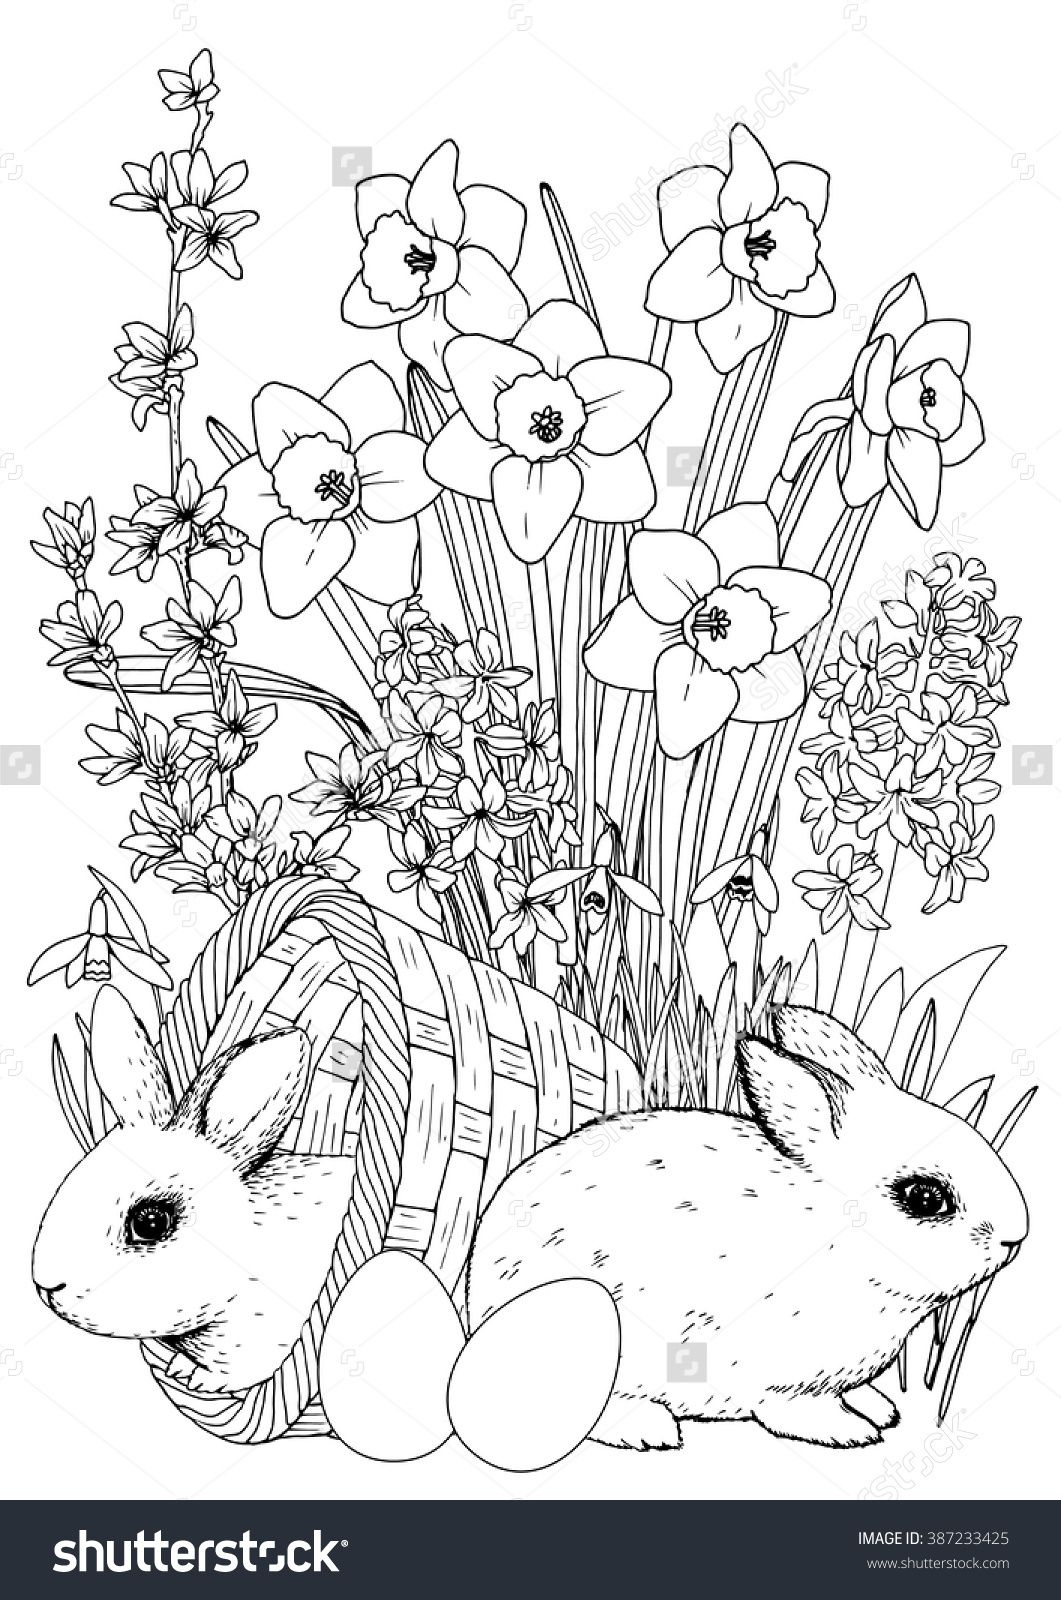 The coloring book of cards and envelopes flowers and butterflies - Printable Coloring Book Page All Elements Are Isolated And Editable